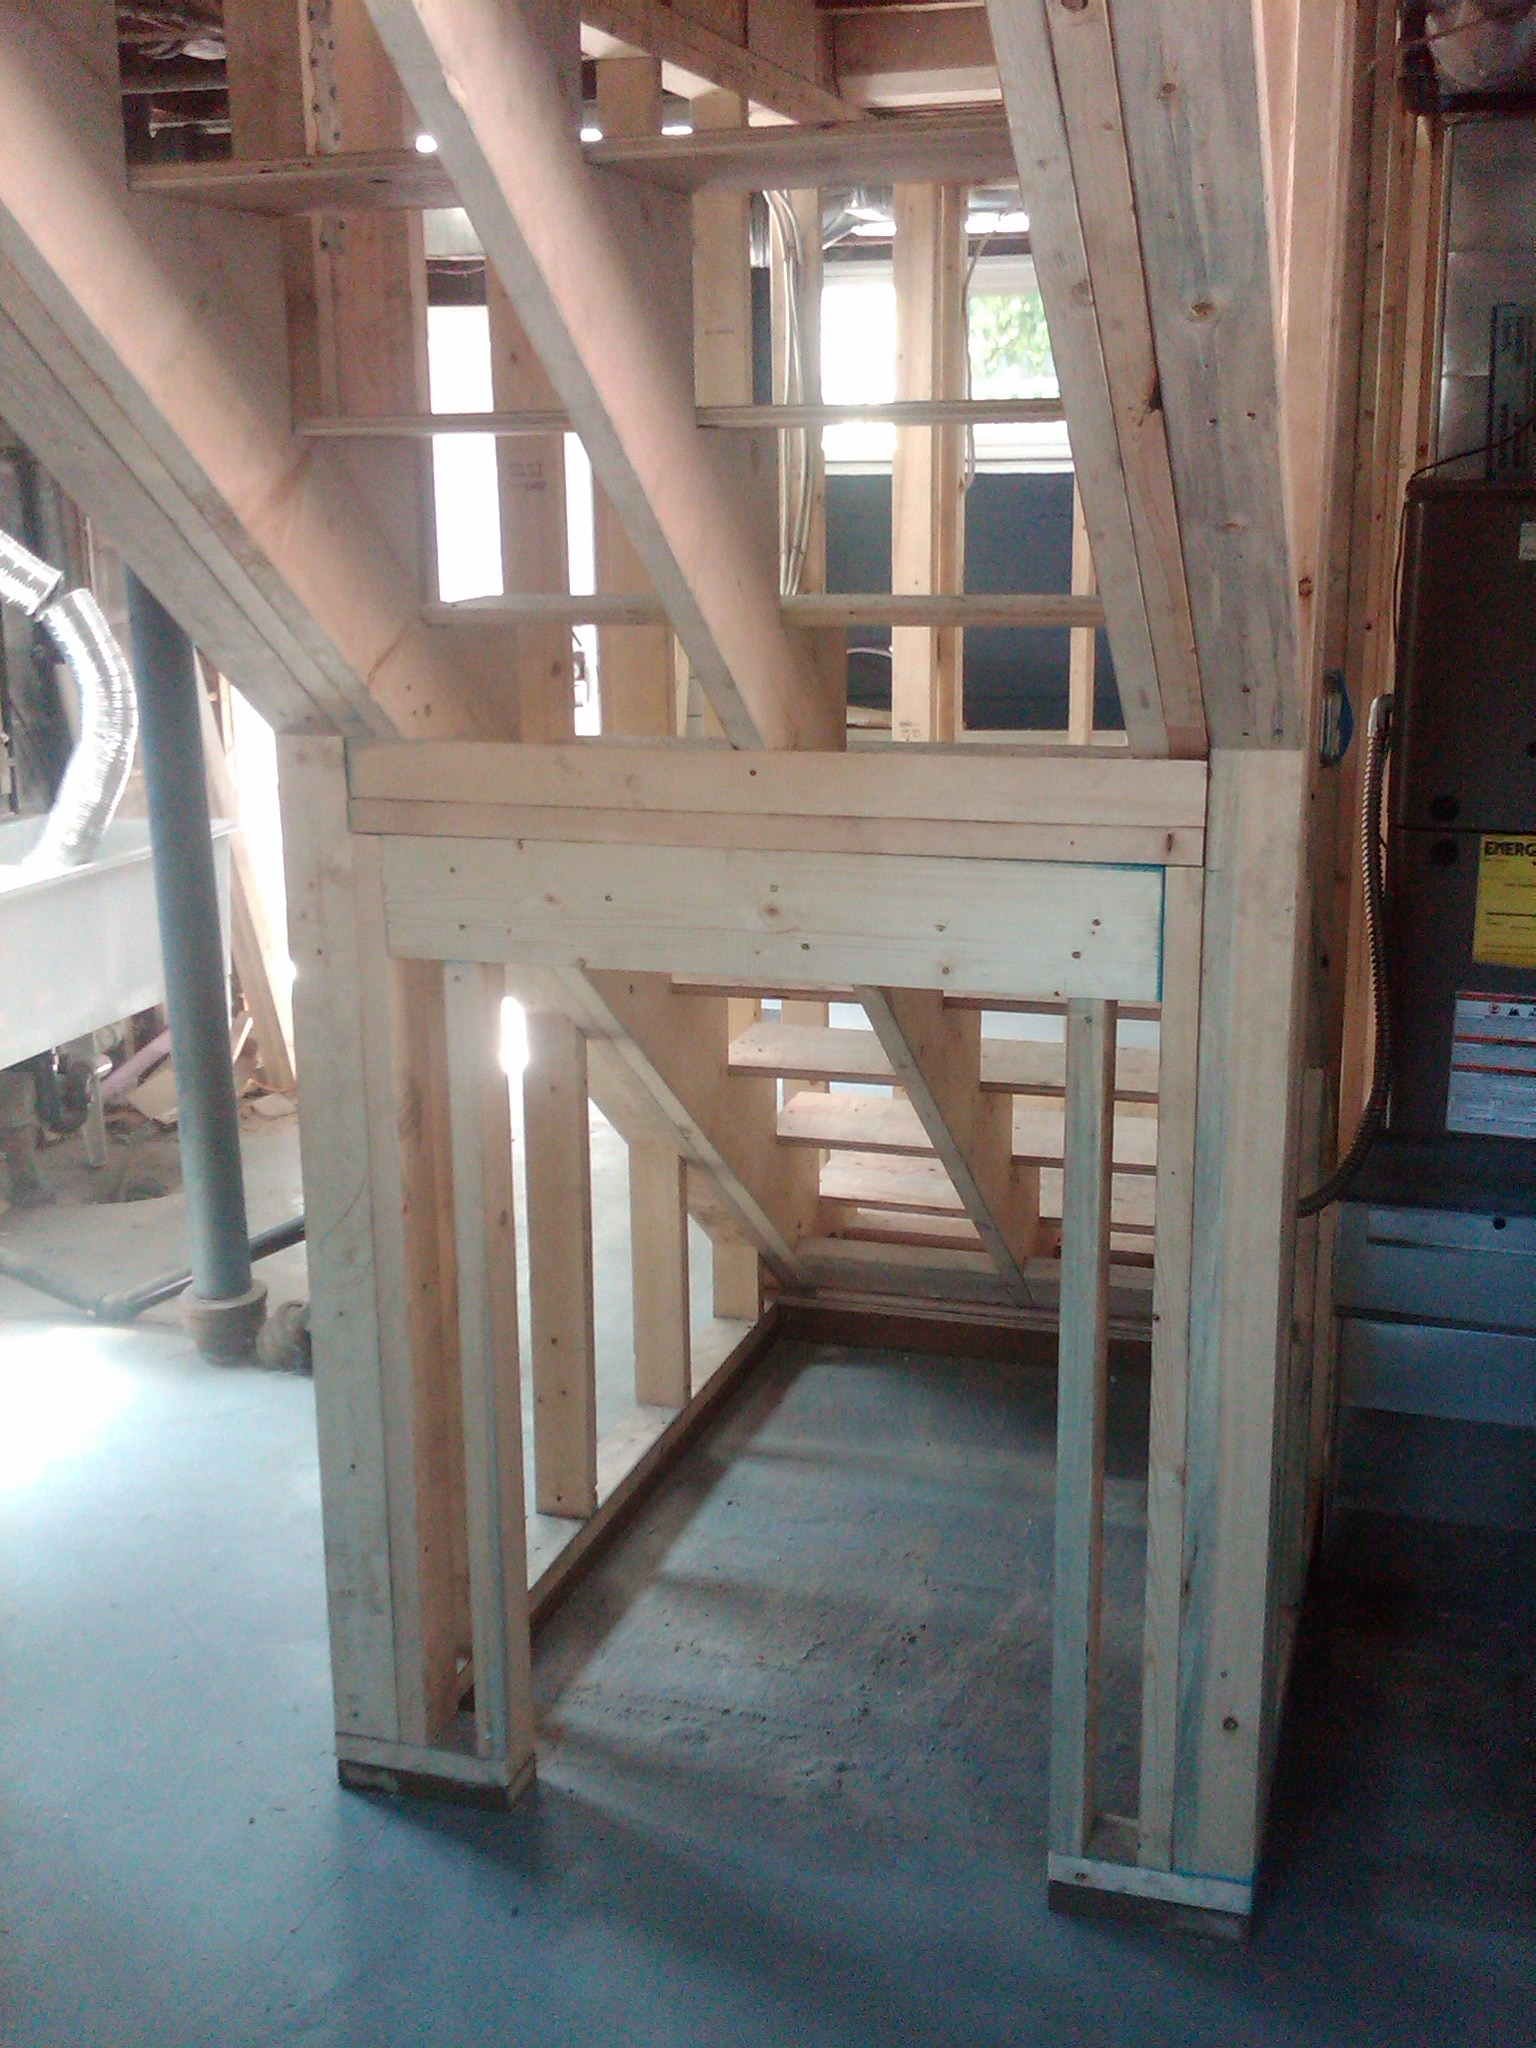 Bathroom Remodel Without Permit need a seattle building permit? | ventana construction blog